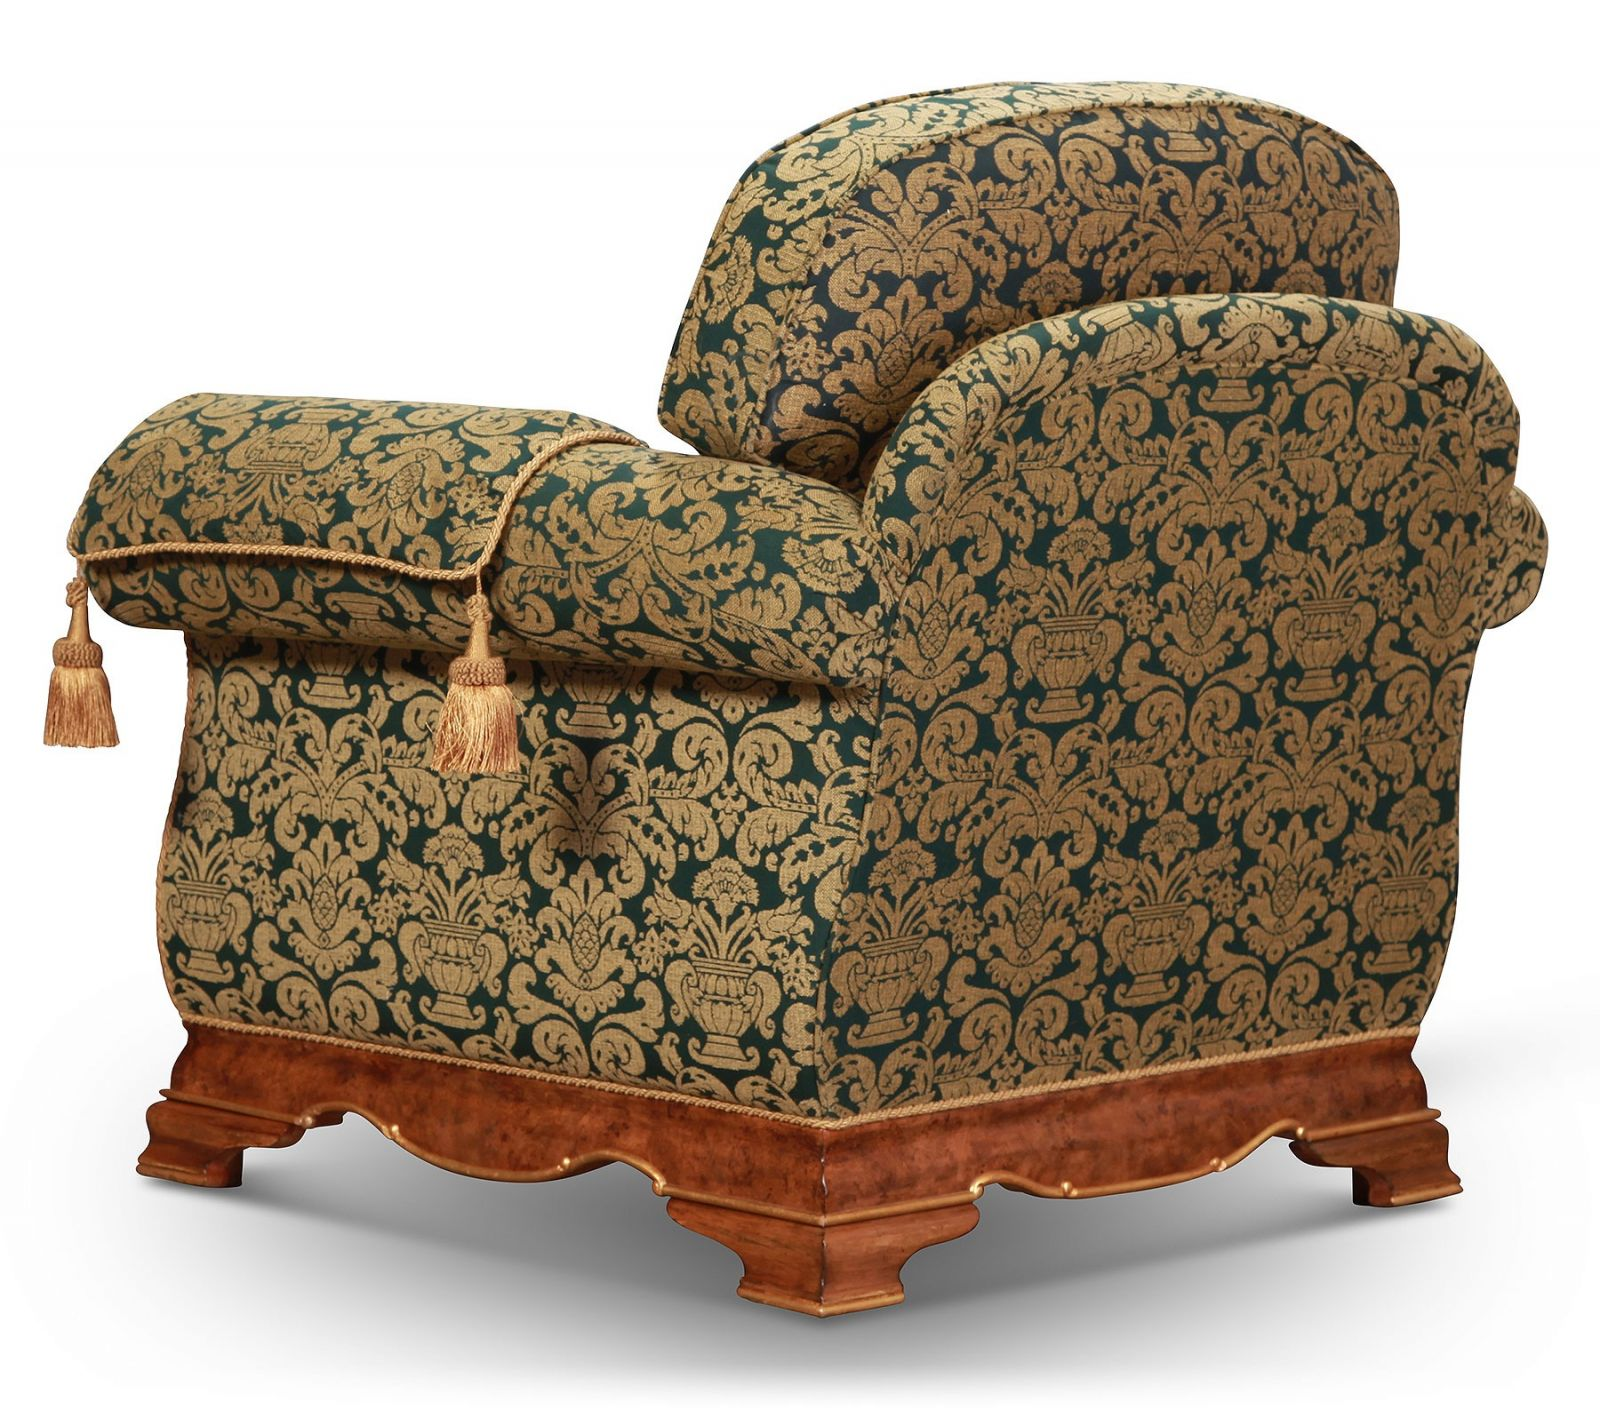 Dorchester sofa and chair in quality green and gold fabric